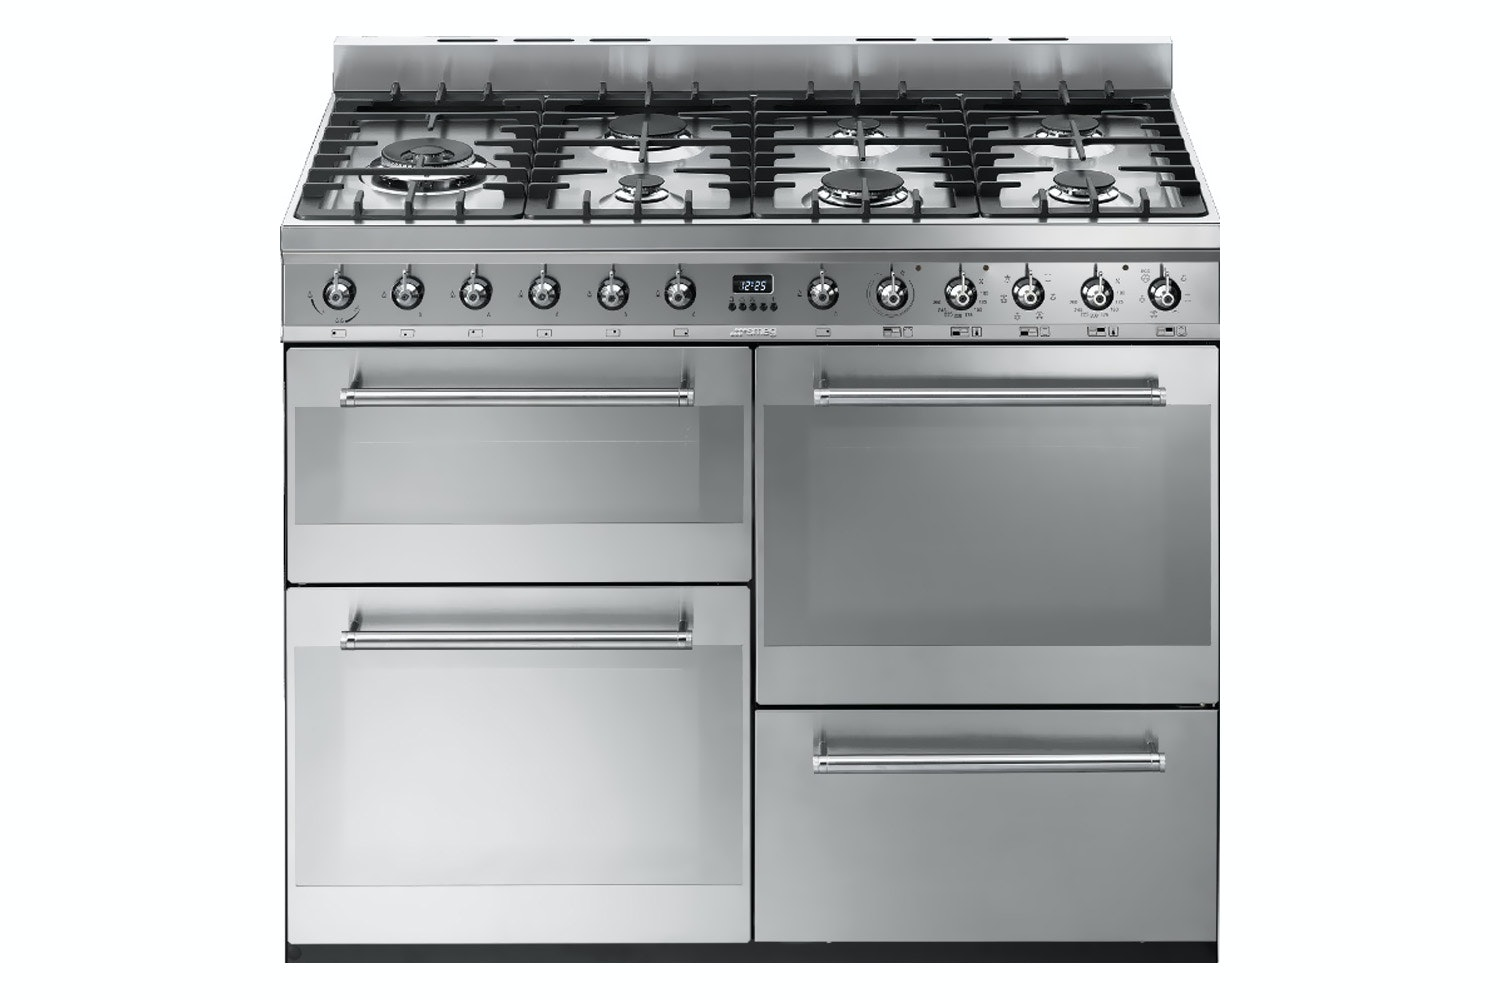 Smeg 110cm Dual Fuel Range Cooker |SYD4110 | Stainless Steel